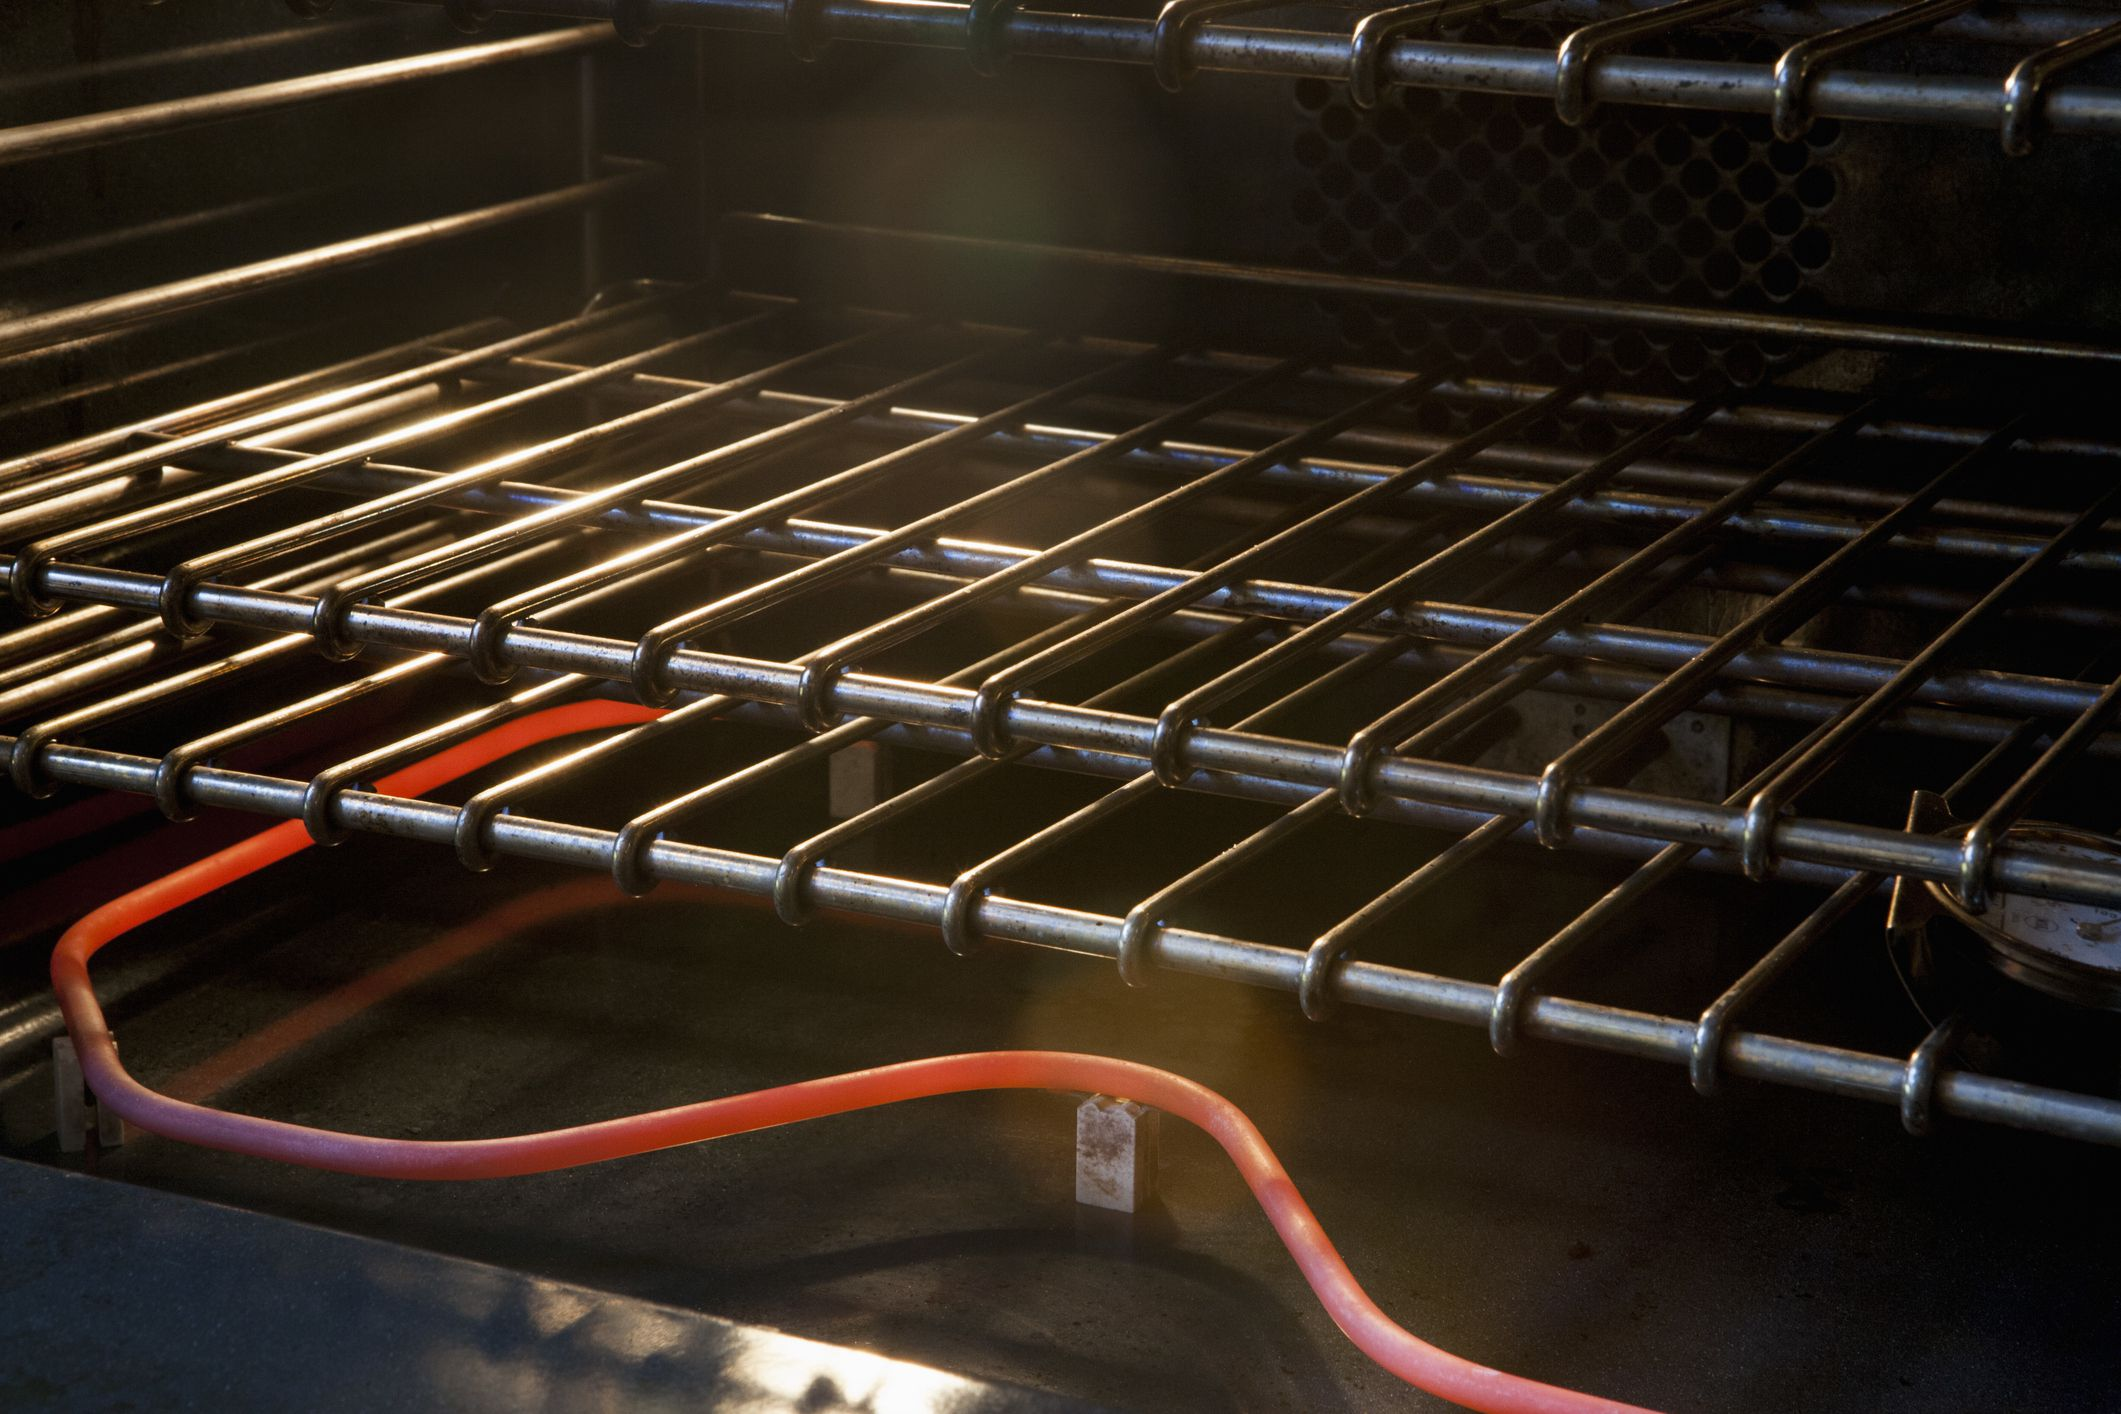 How To Replace The Baking Coil In An Electric Oven Kic Stove Wiring Diagram